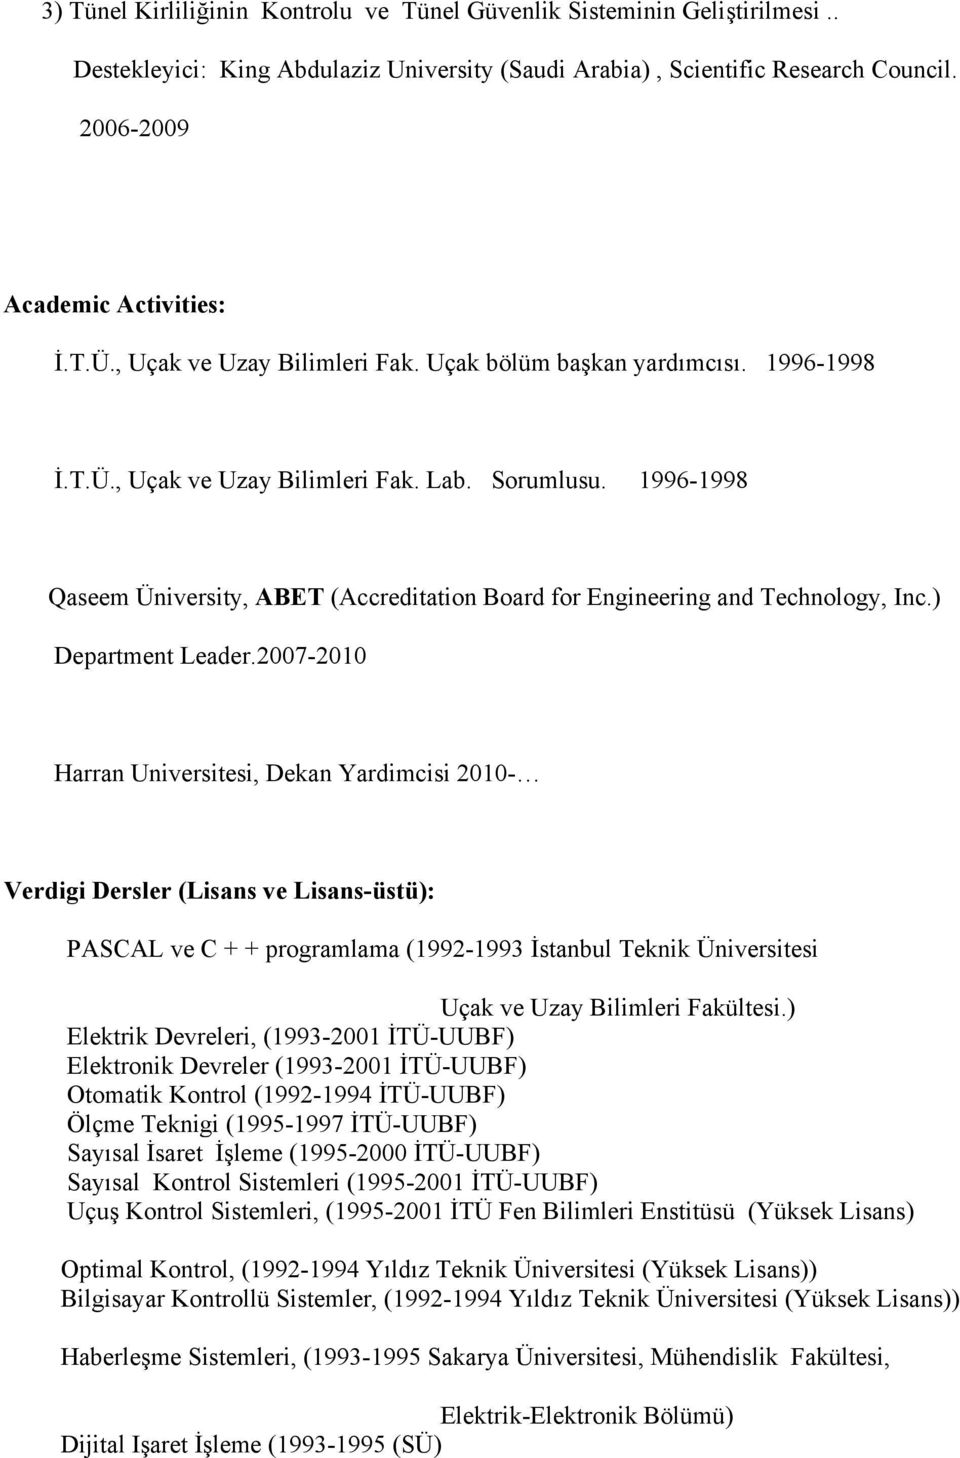 1996-1998 Qaseem Üniversity, ABET (Accreditation Board for Engineering and Technology, Inc.) Department Leader.